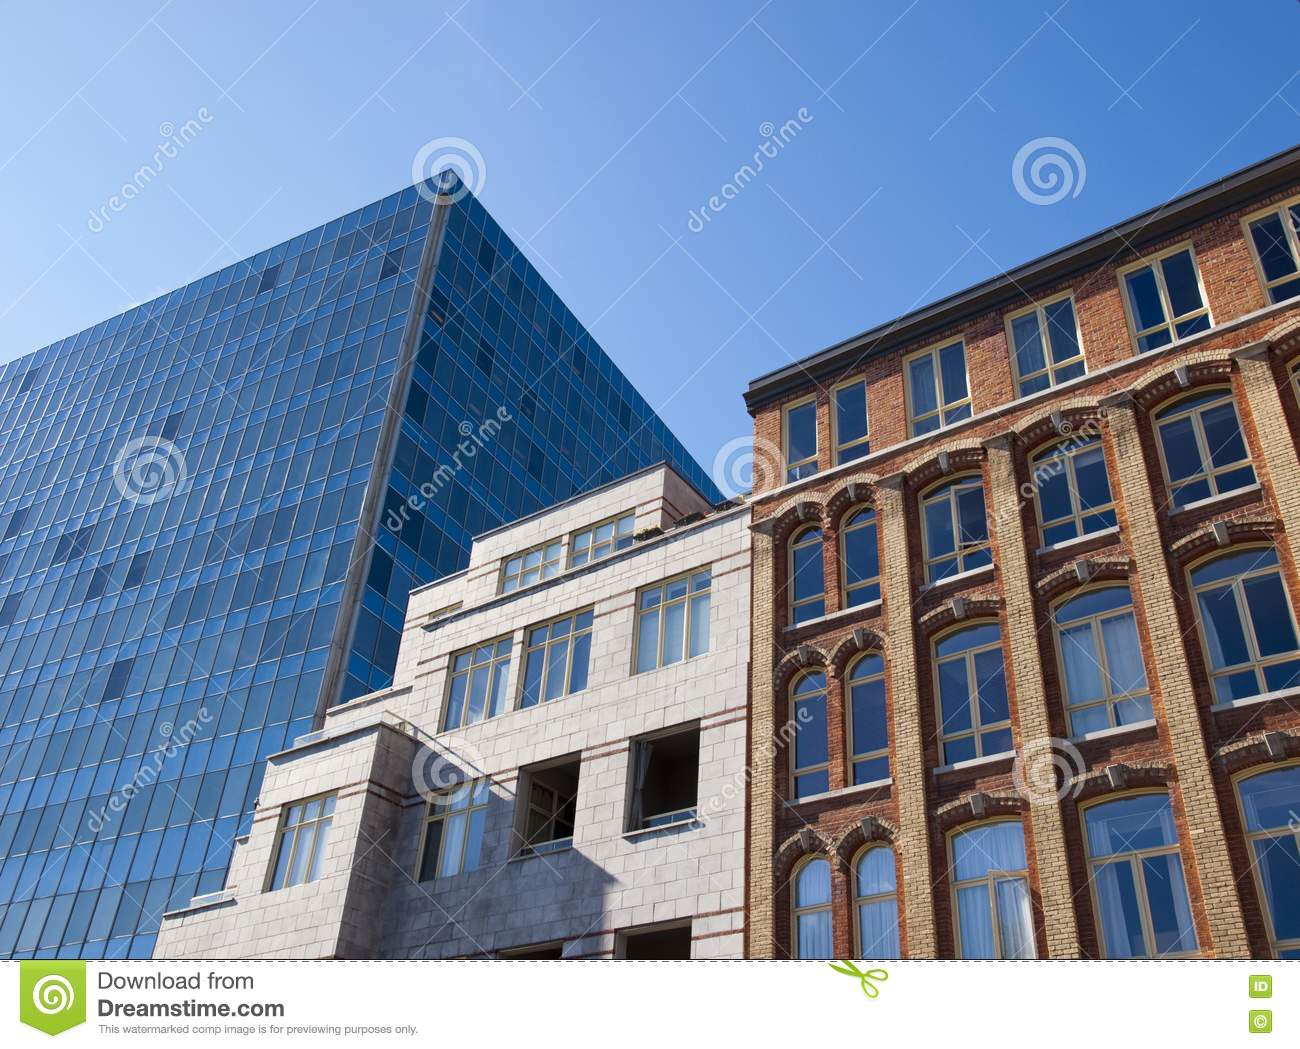 Architectural styles stock image image 16475871 for Different building styles